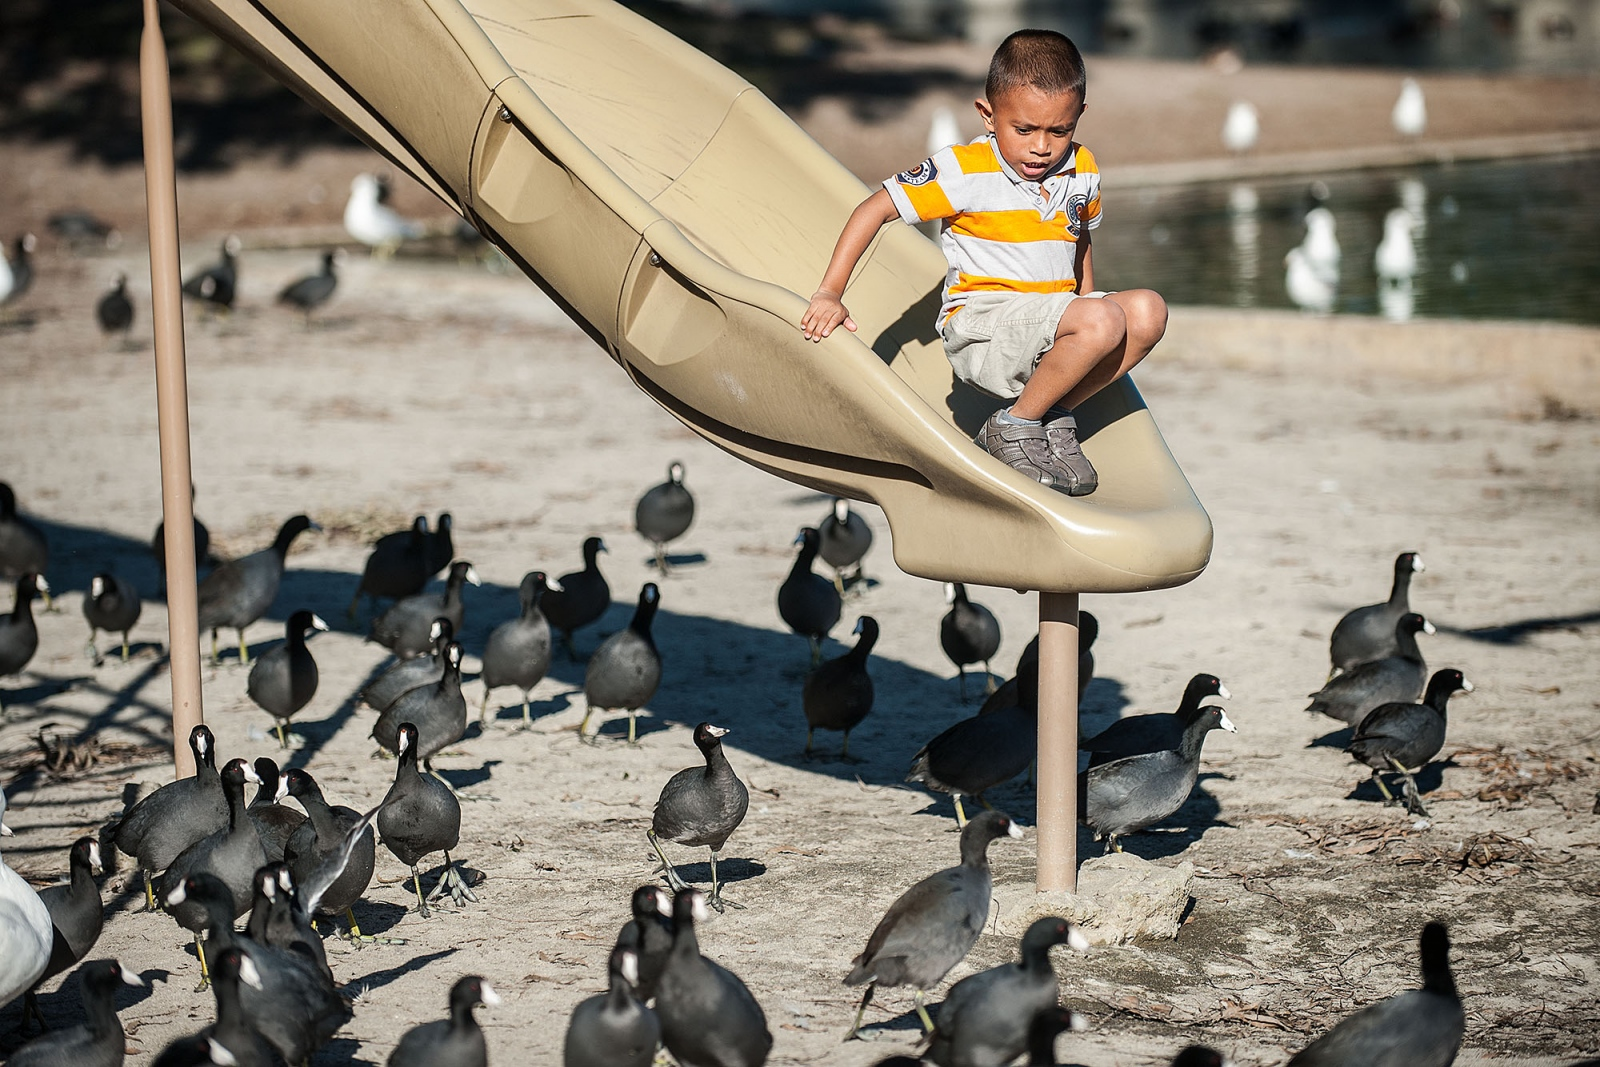 Allan Hernandez, 6, of Santa Ana contemplates his next step off the playground slide as American coots surround him at Centennial Regional Park in Santa Ana, California.